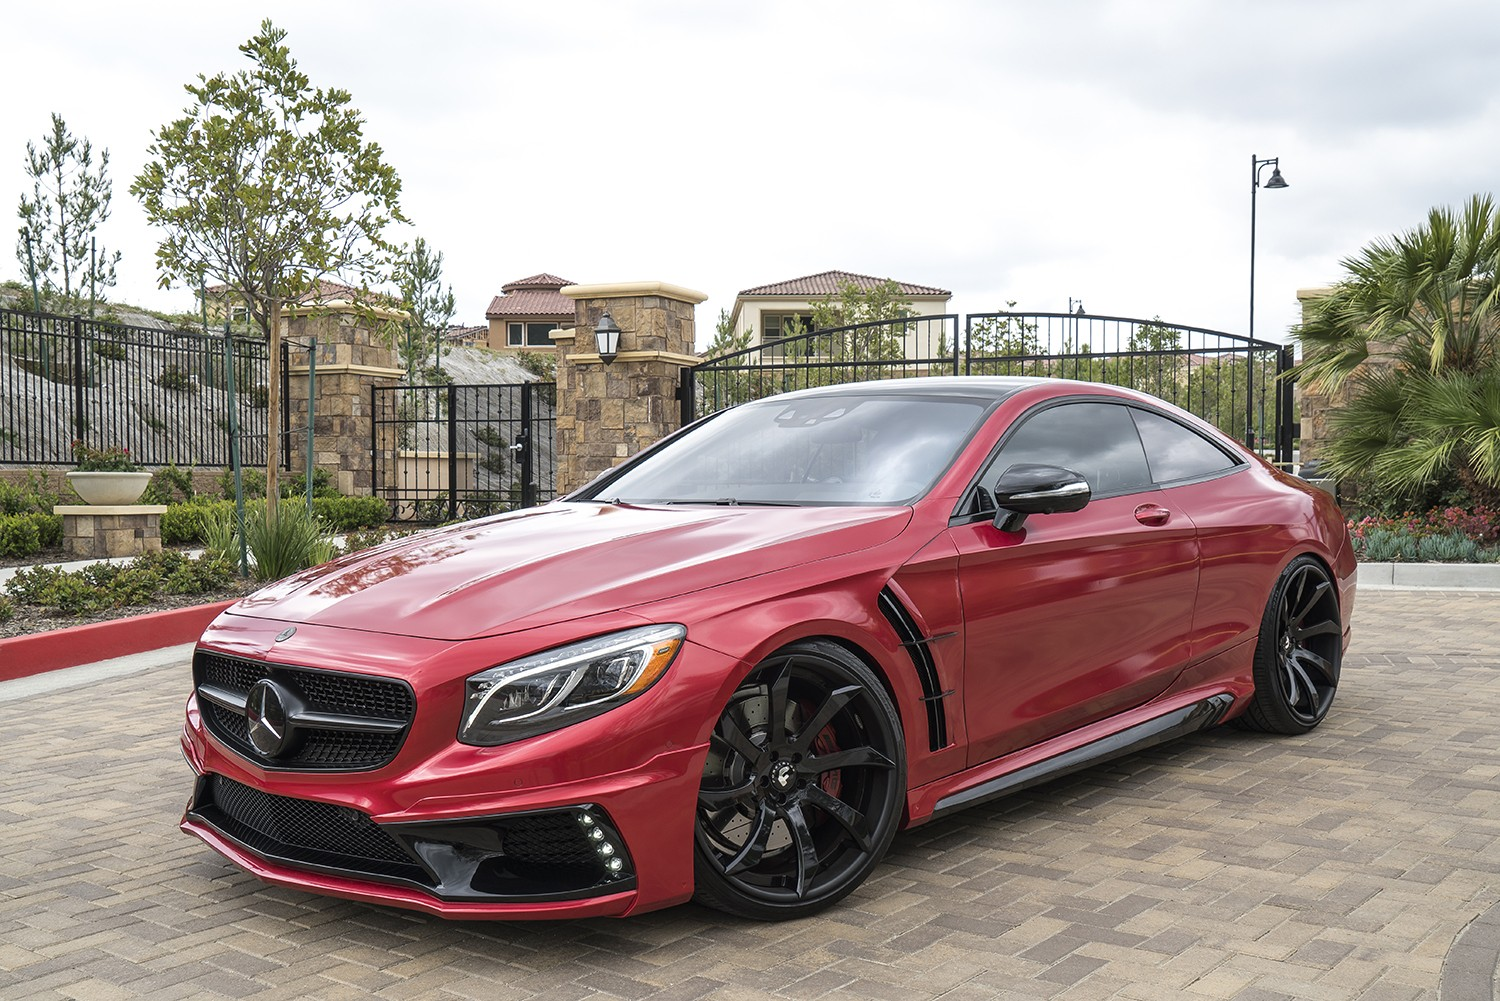 Mercedes Amg S63 Coupe Gets Wald Body Kit And Forgiato Wheels Autoevolution